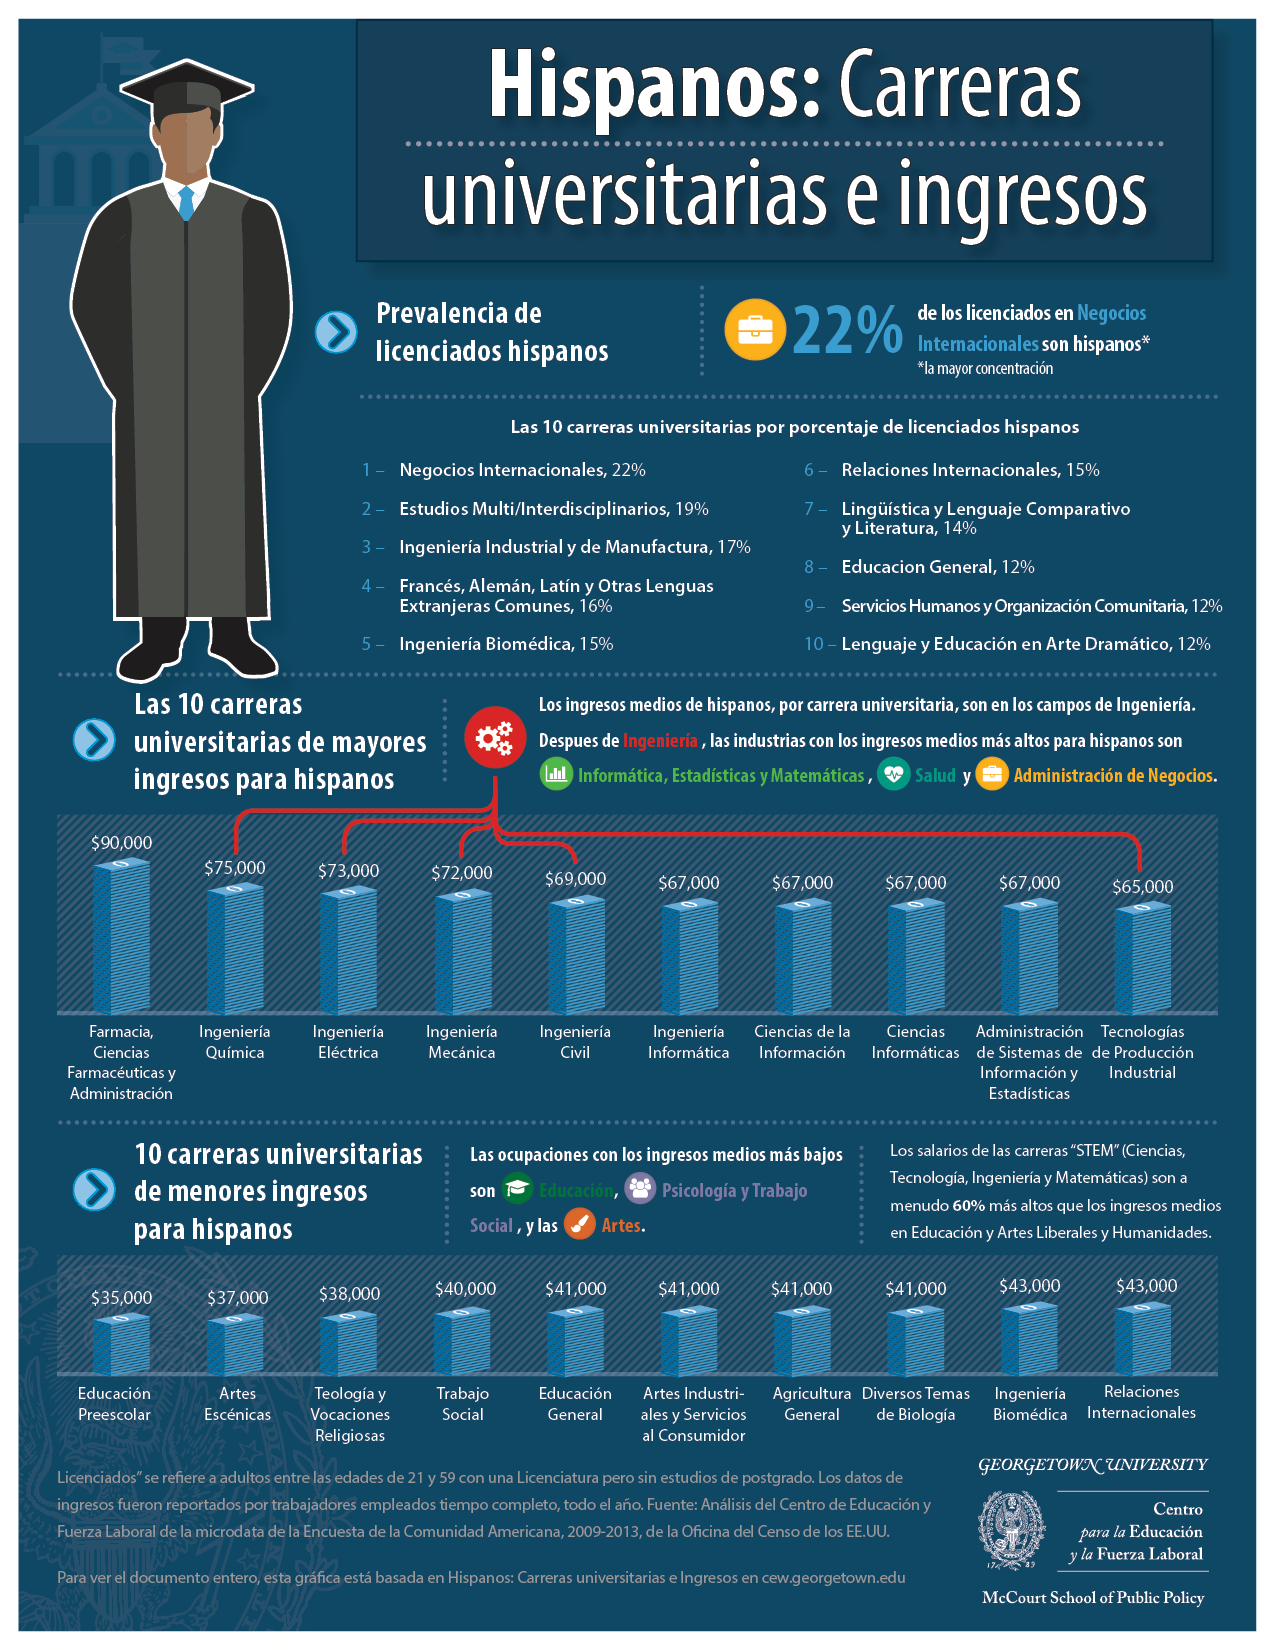 Infografía de Carreras Universitarias de Hispanos